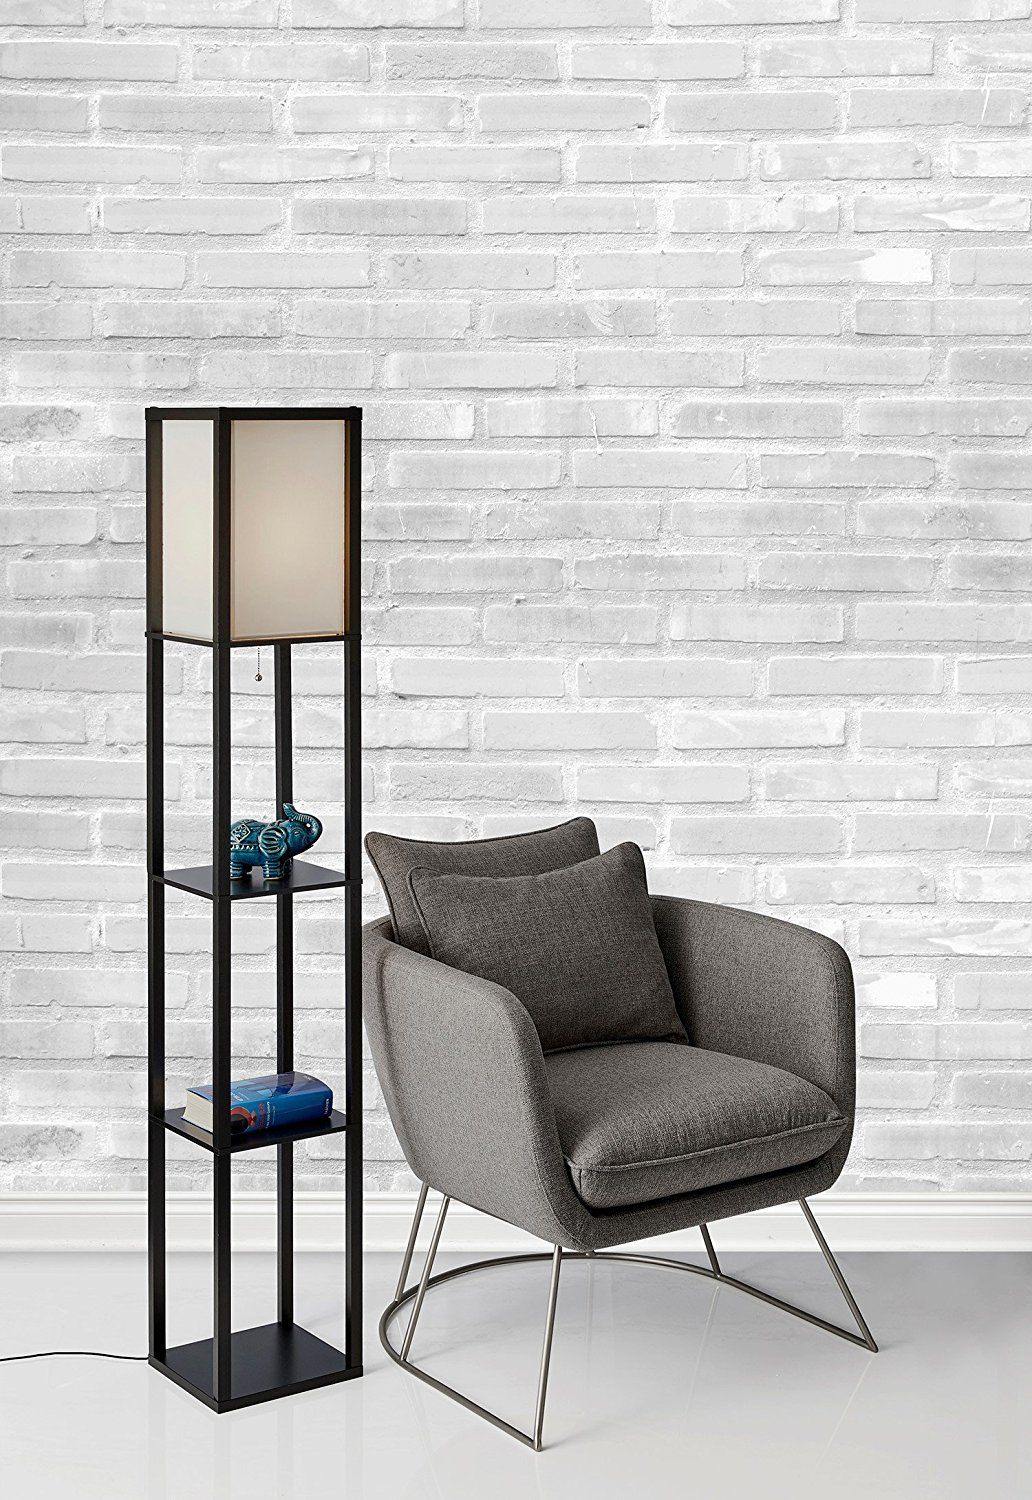 Adesso 3138 01 Wright 63 Quot Floor Lamp W 2 Storage Shelves Smart Switch Compatible Floor Lamp